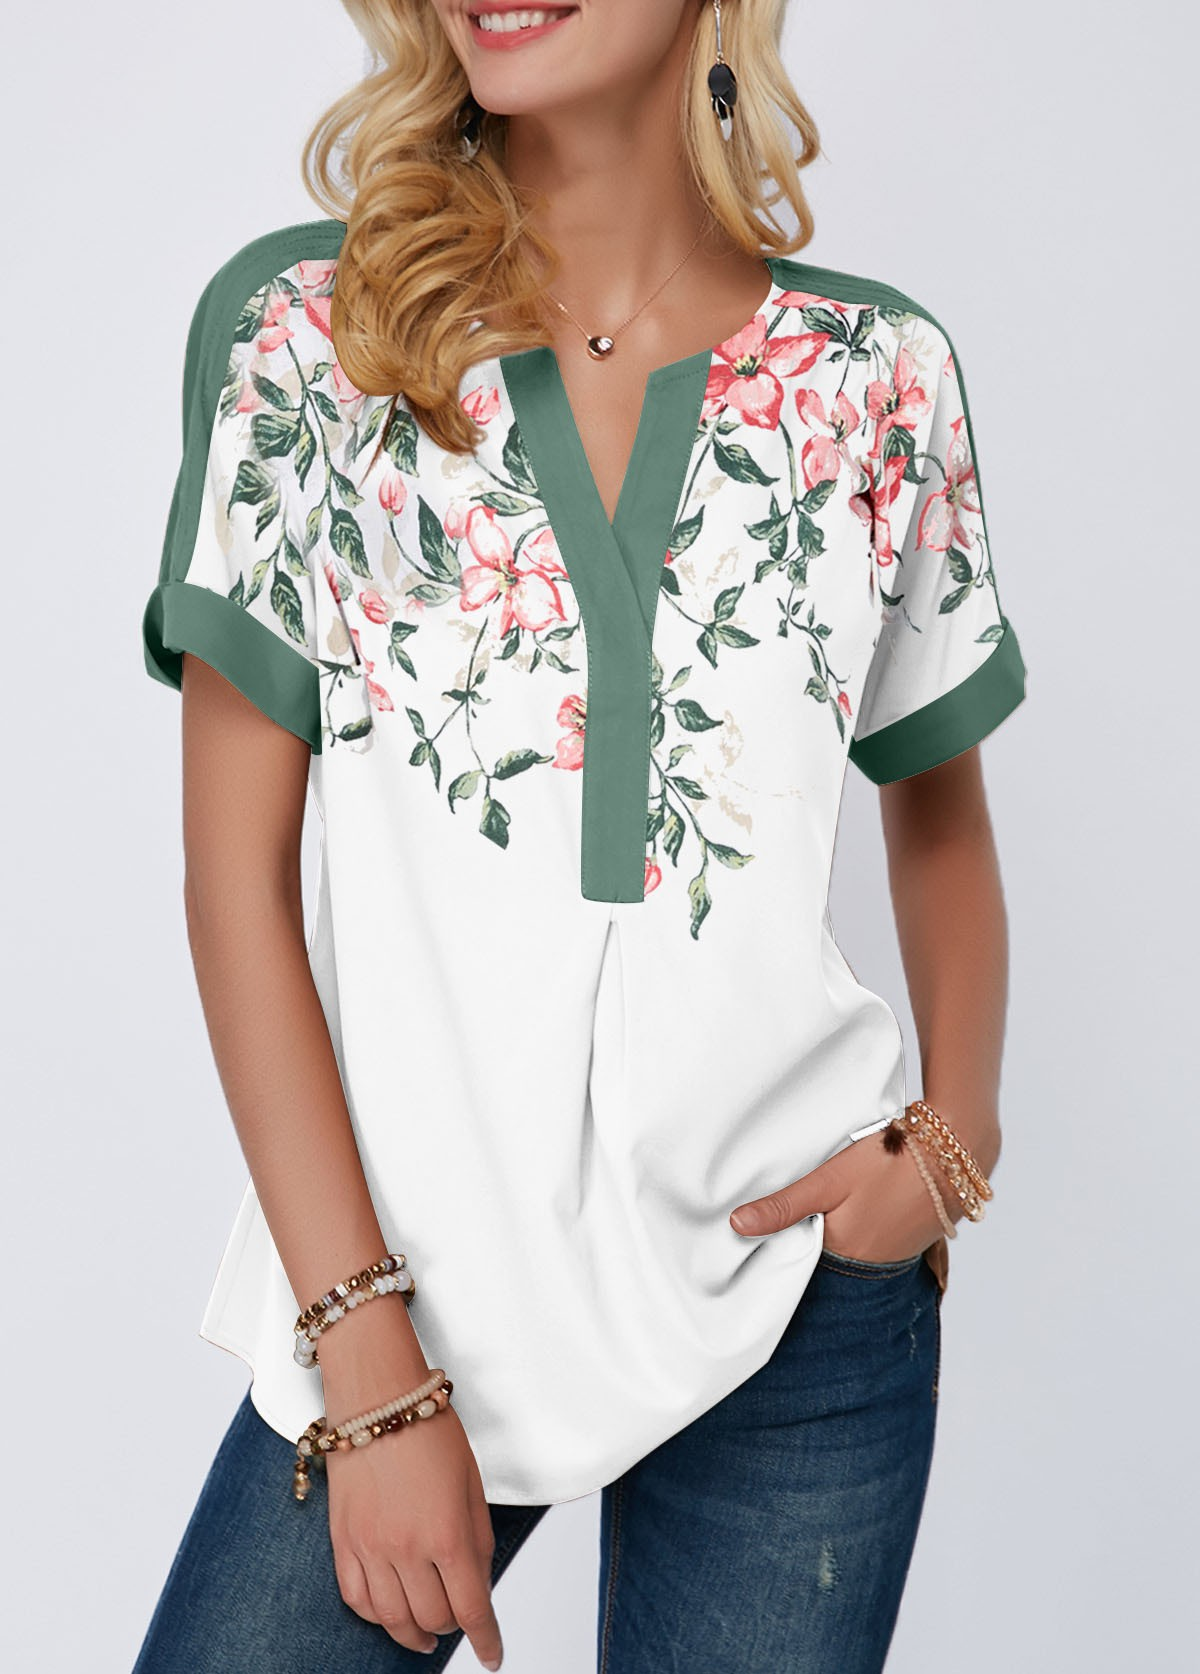 ROTITA Notch Neck Floral Print Contrast Piping Blouse